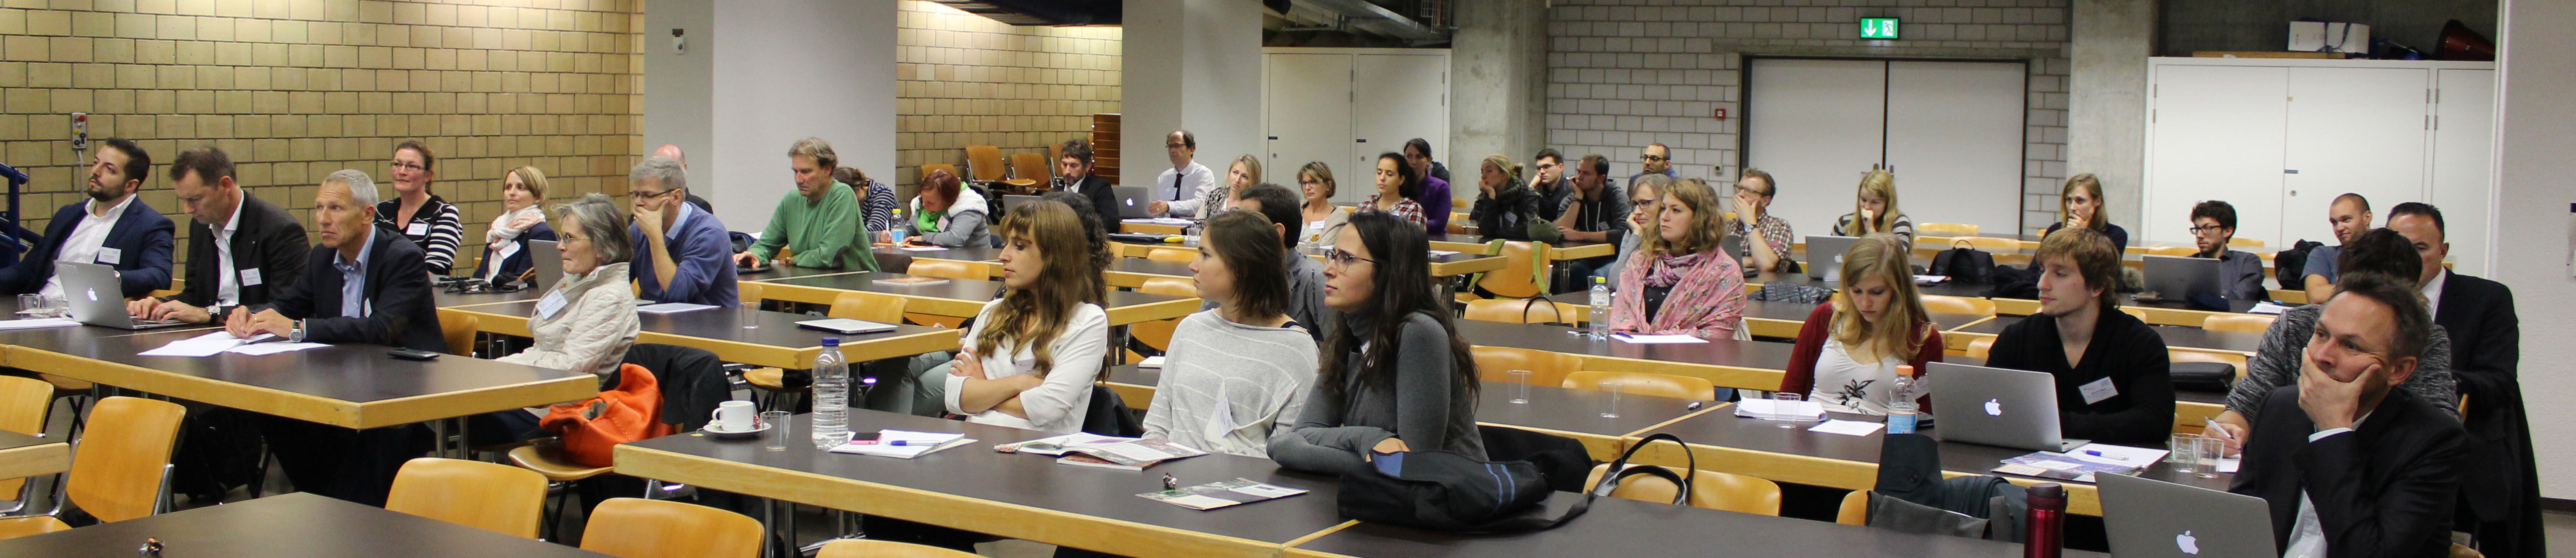 Foto Audience 6. Symposium